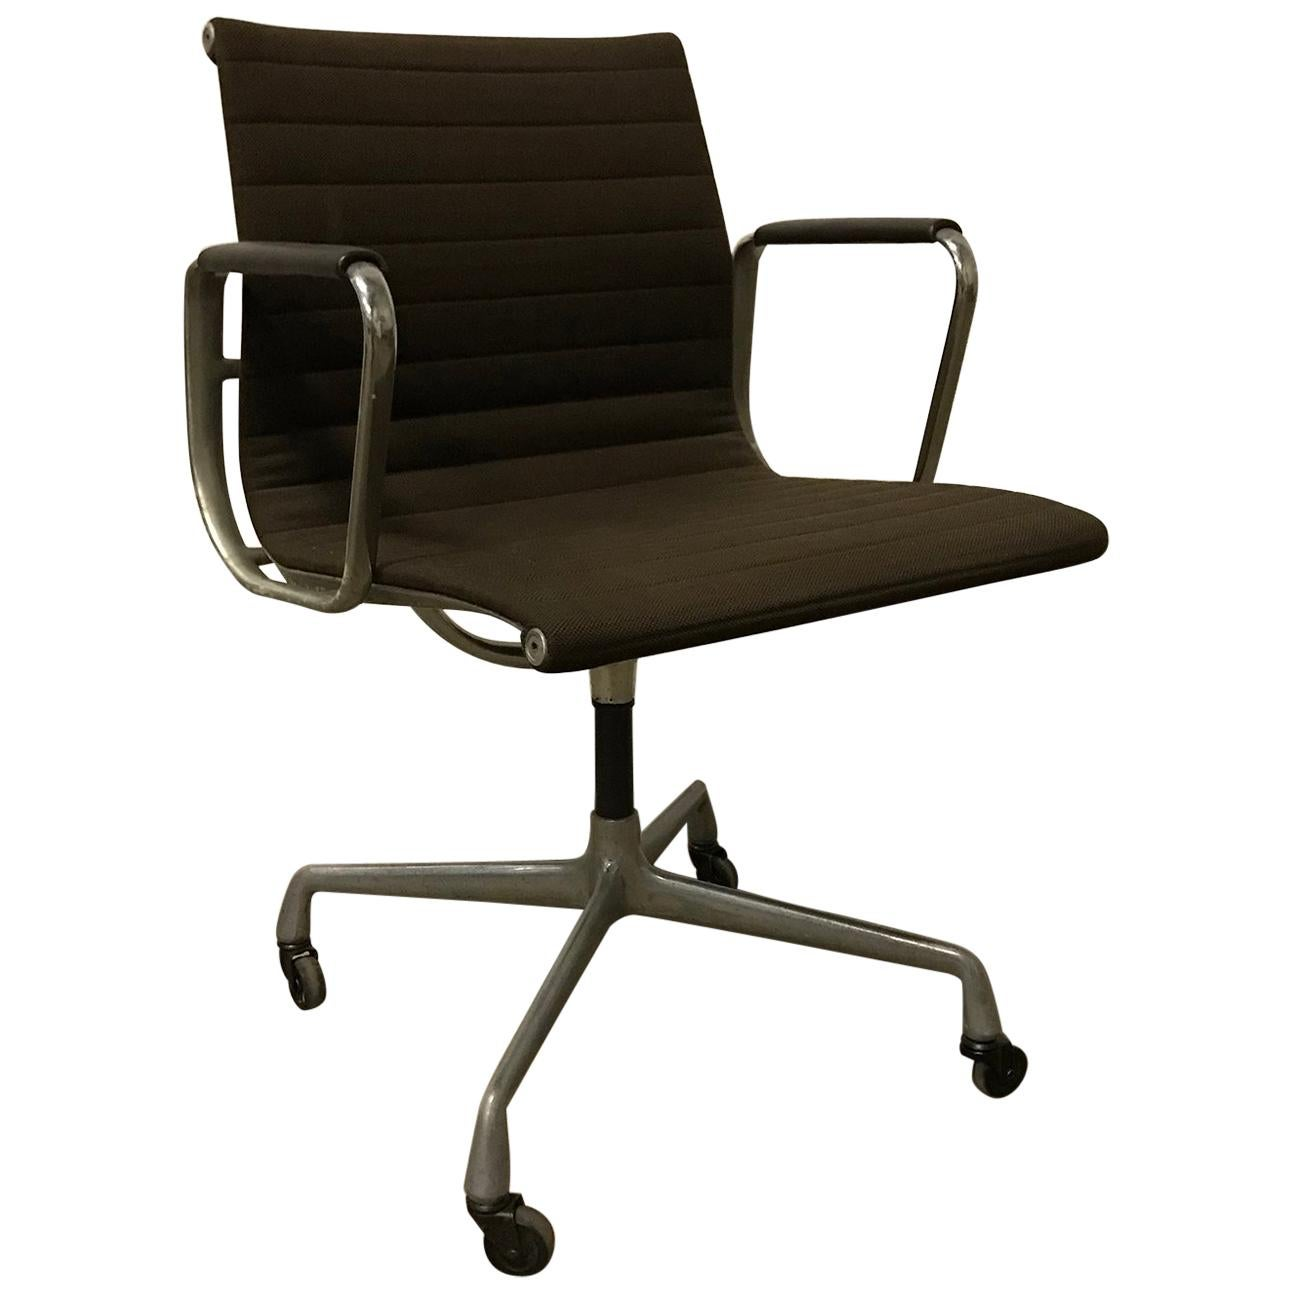 Eames 108 1958 Ray And Charles Eames For Herman Miller Ea 108 Office Chair Plus Armpads